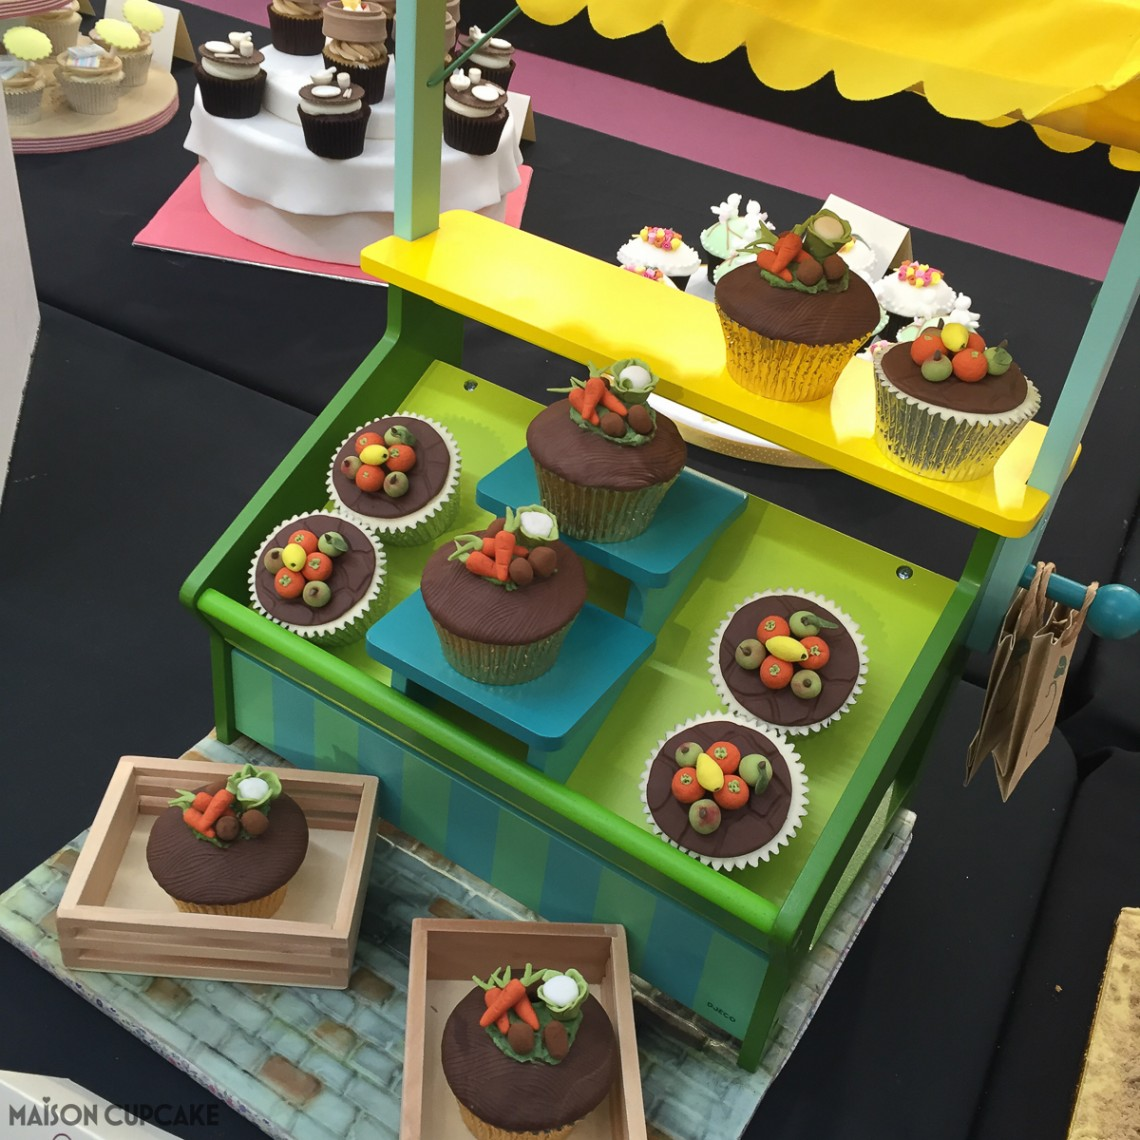 Vegetable Stall Cupcakes by Lisa Williams